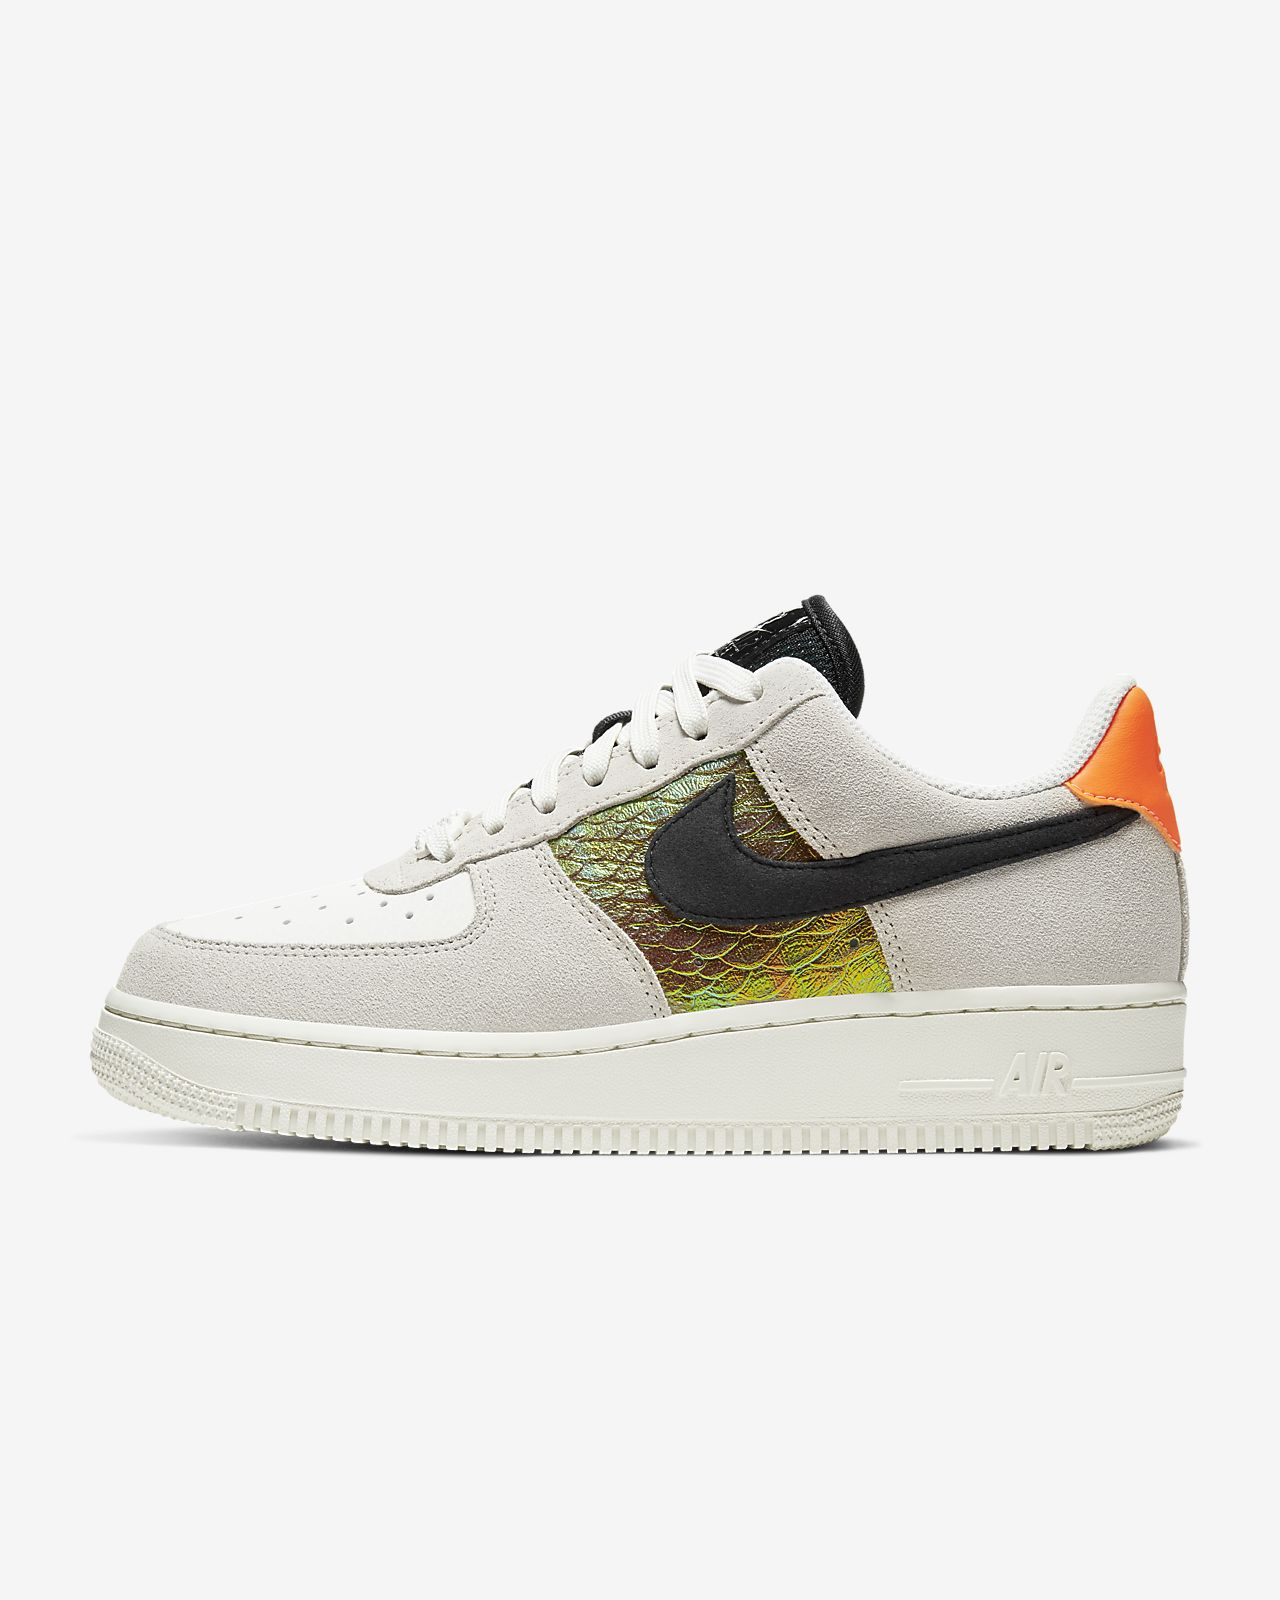 Nike Air Force 1 Low Schematic Black White Bright Crimson